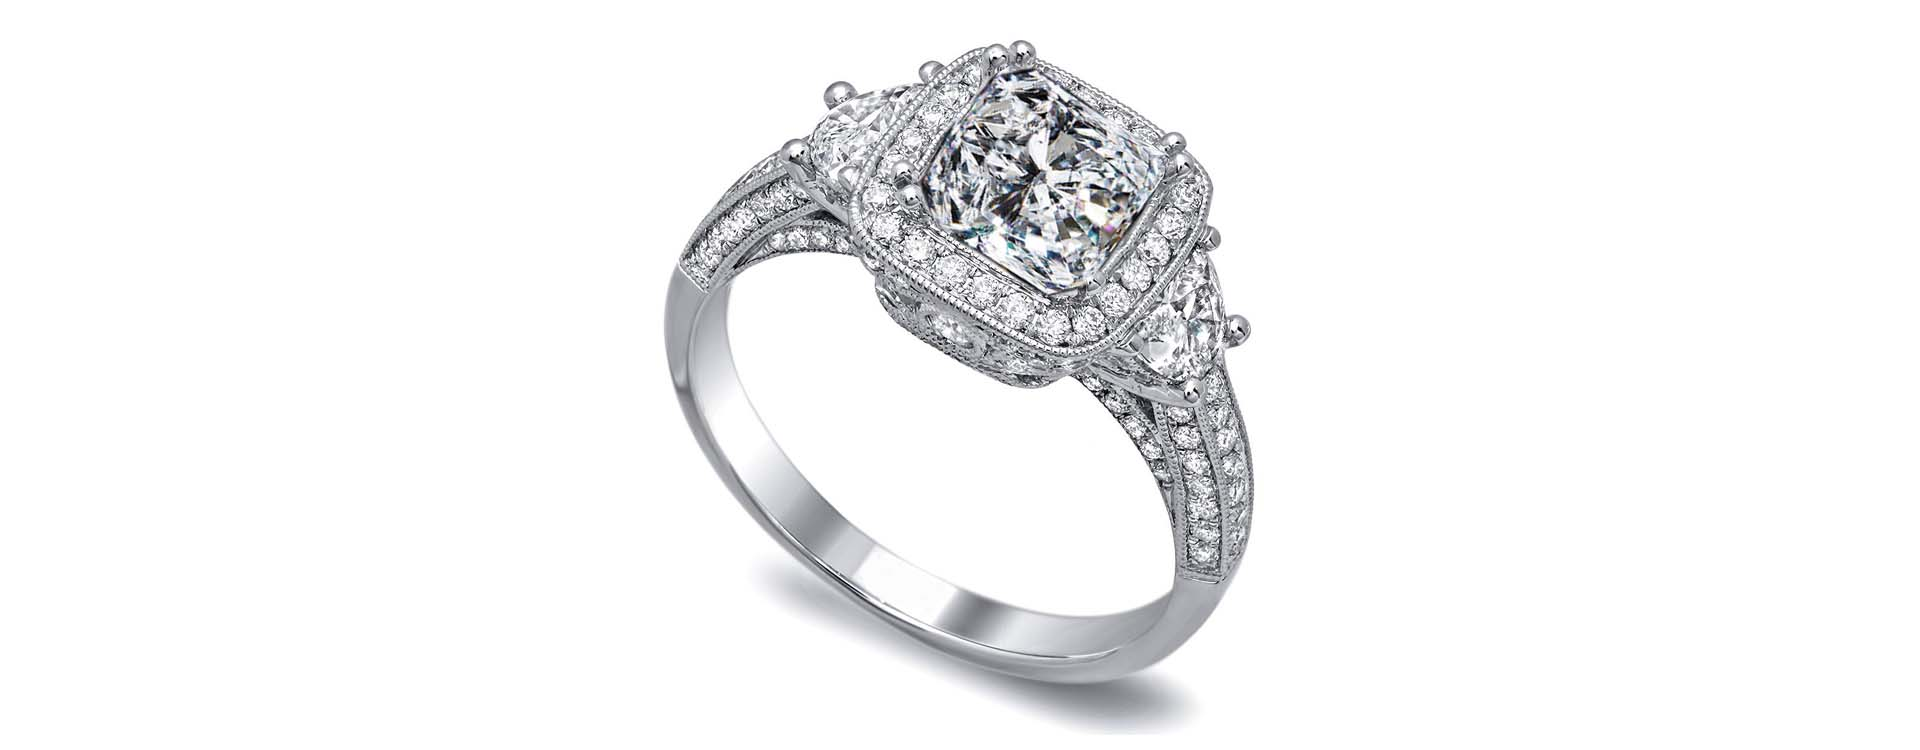 Diamong Engagement Rings